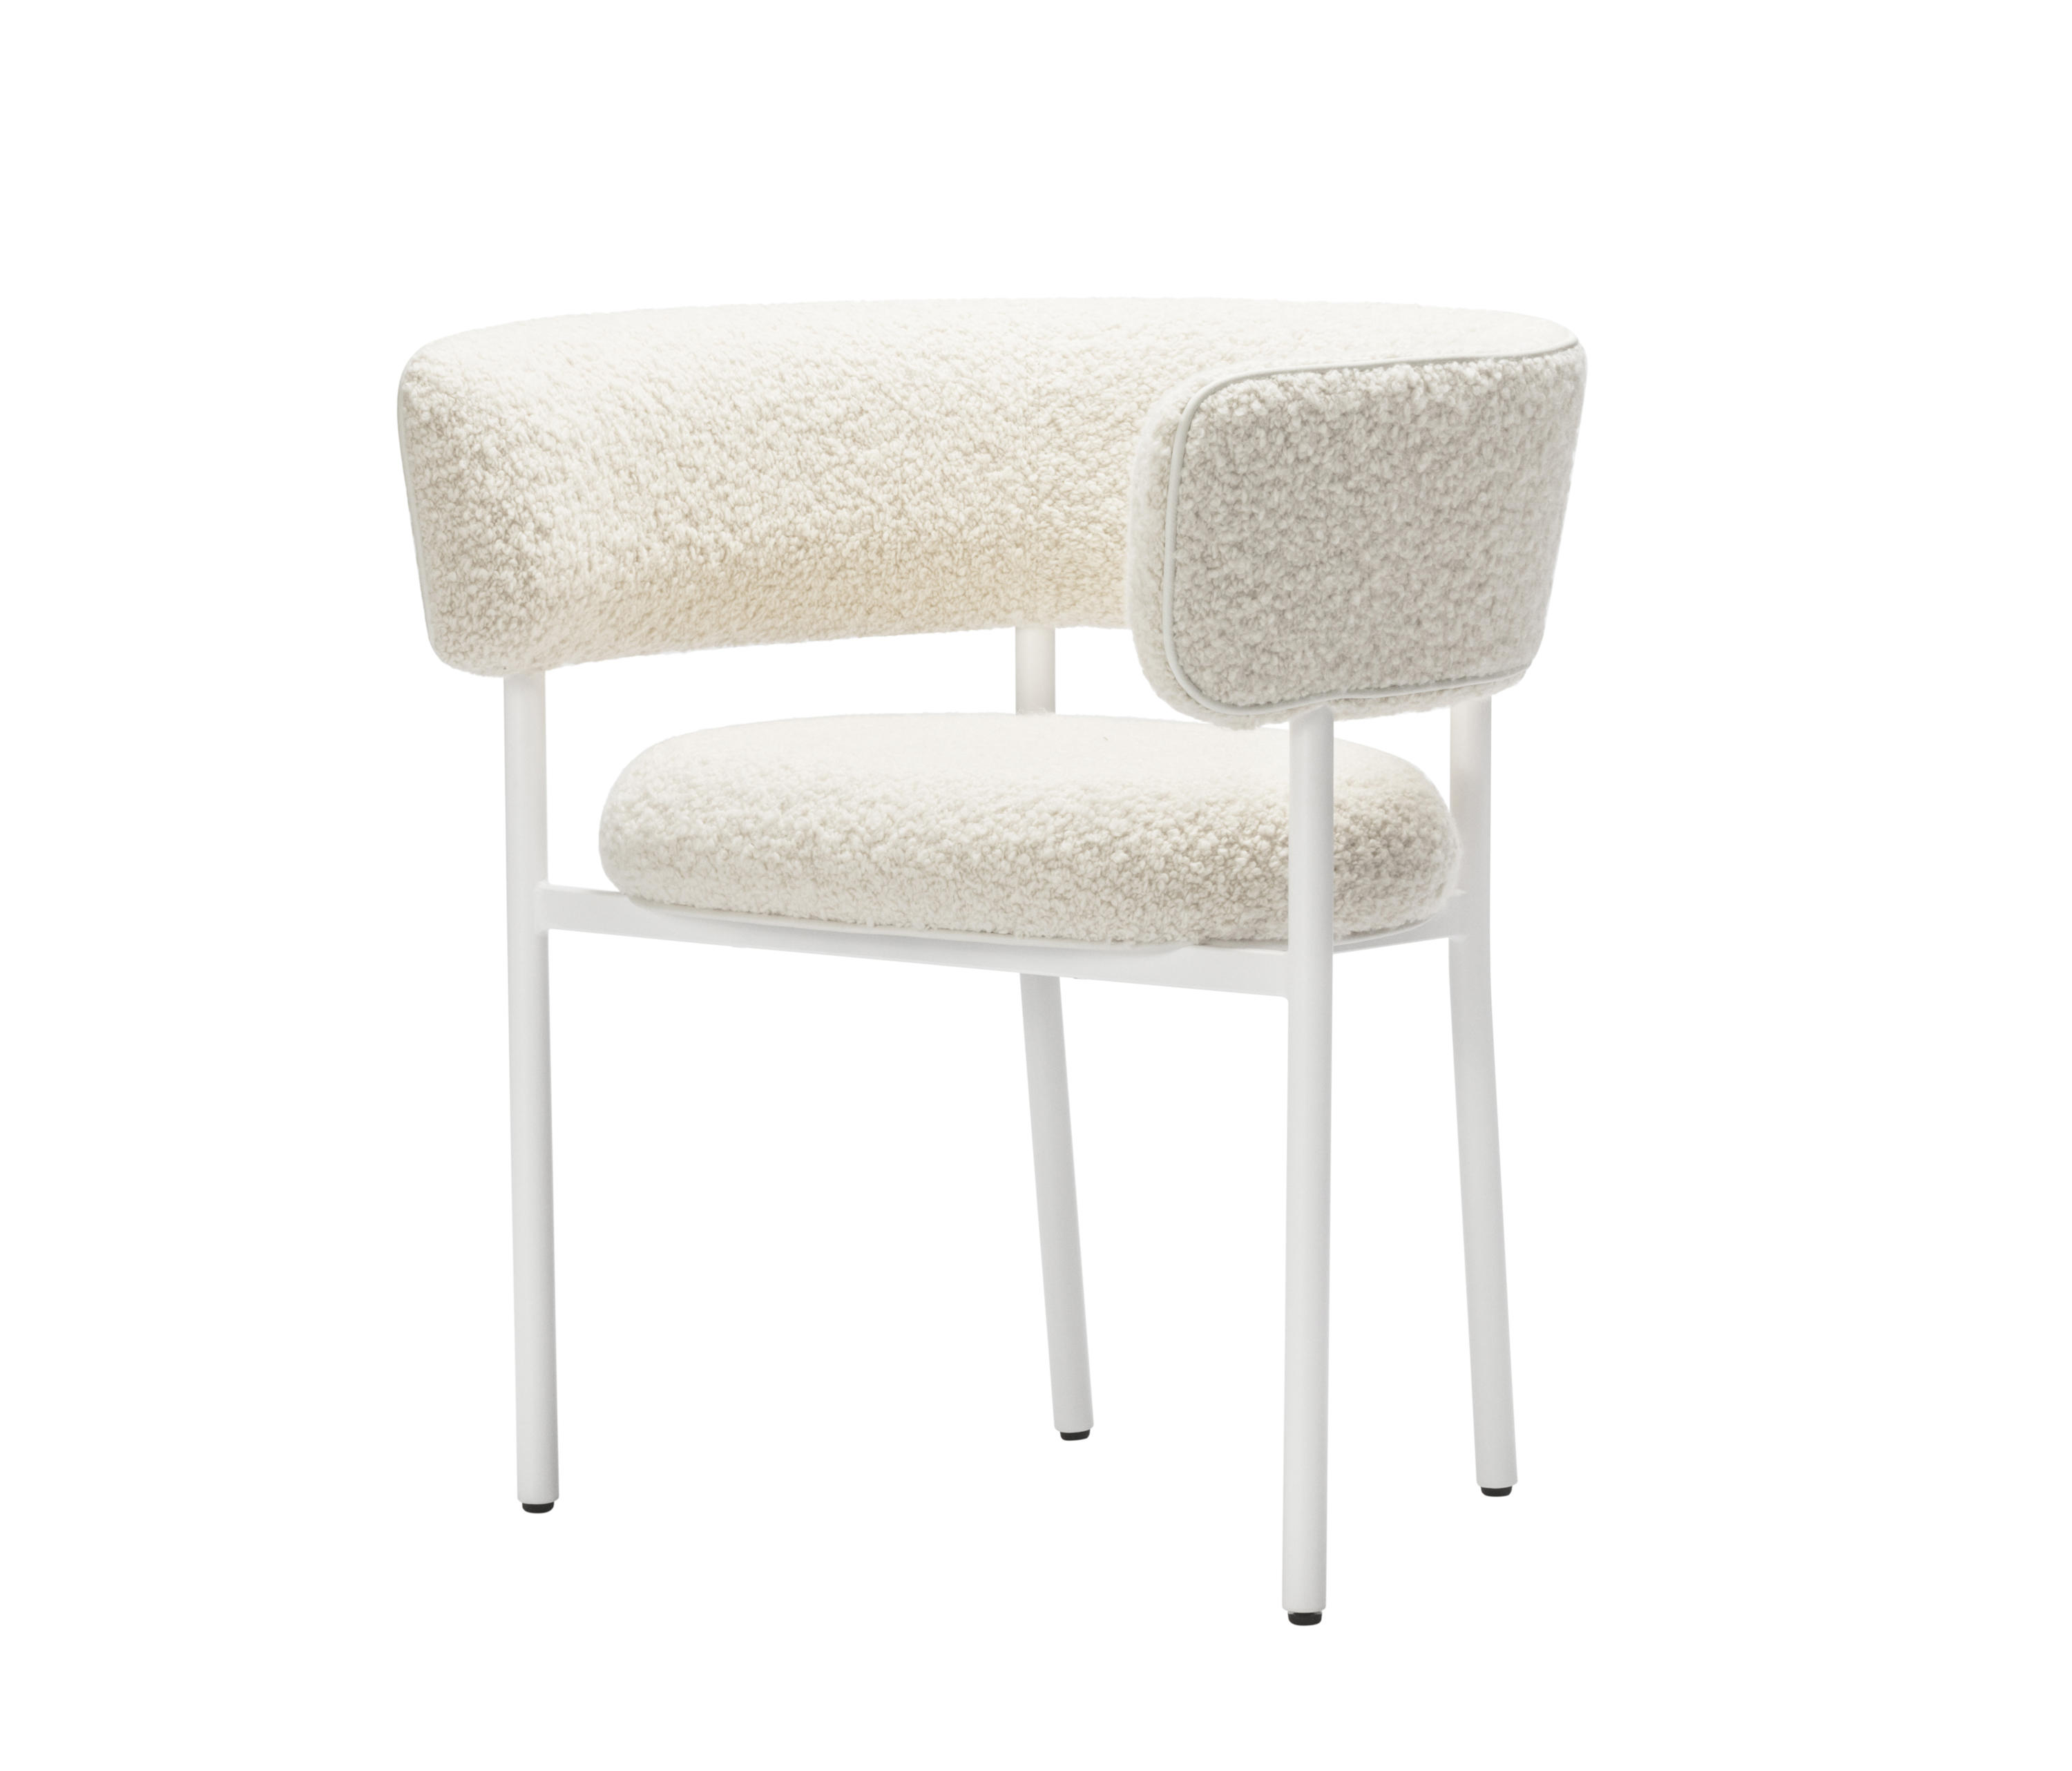 font regular dining chair armrest chairs from mobel